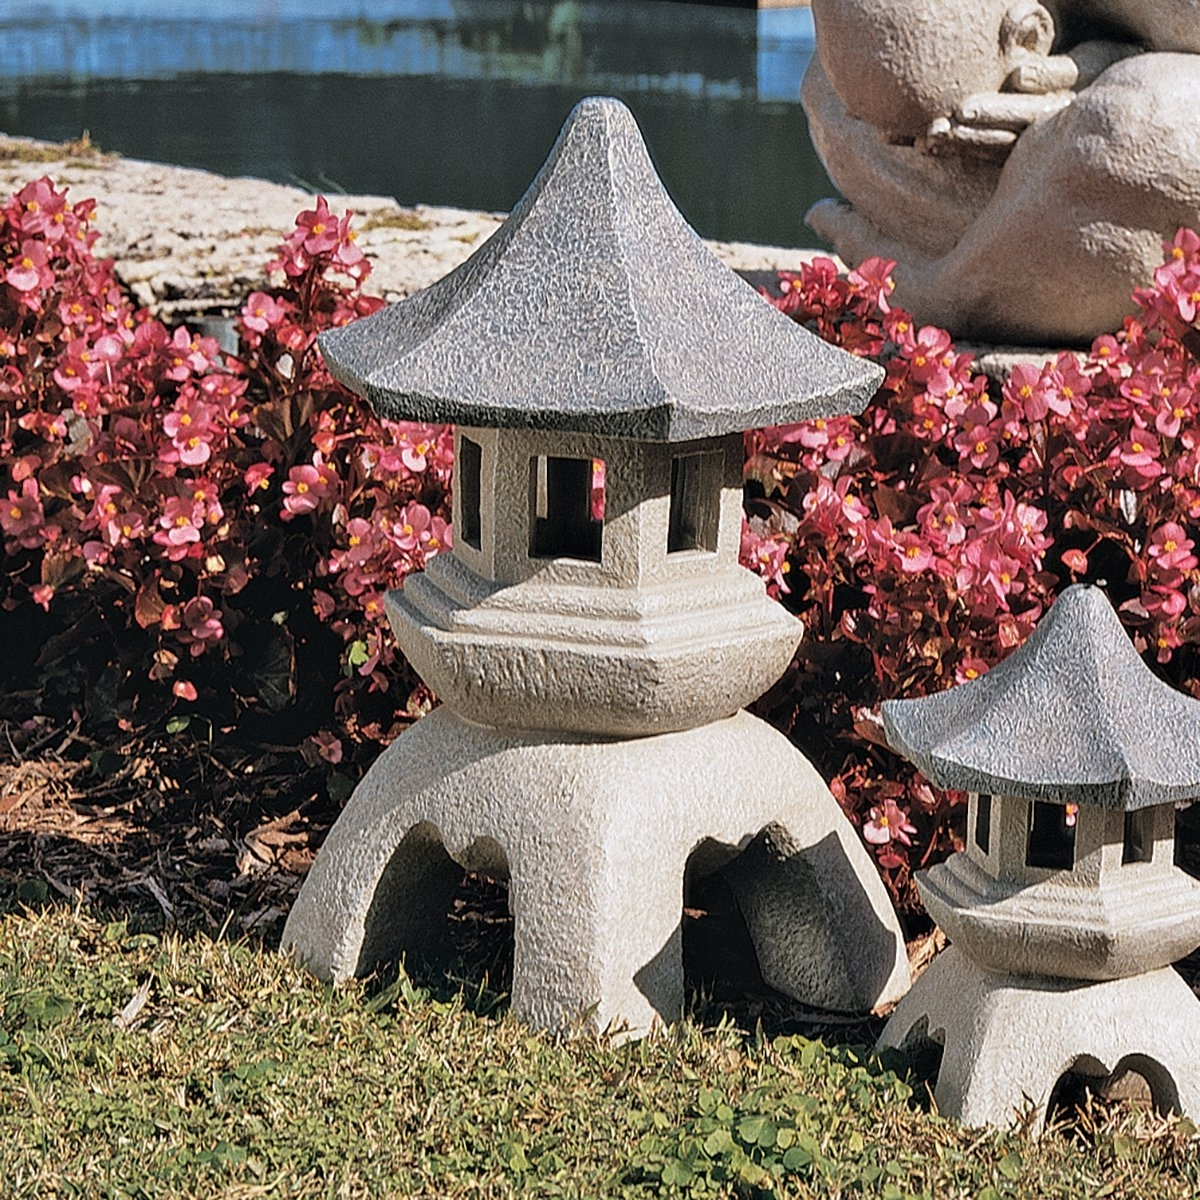 Outdoor Japanese Lanterns For Sale Within Best And Newest 4 Cheap Outdoor Japanese Garden Lanterns For Sale – Homelilys Decor (View 18 of 20)